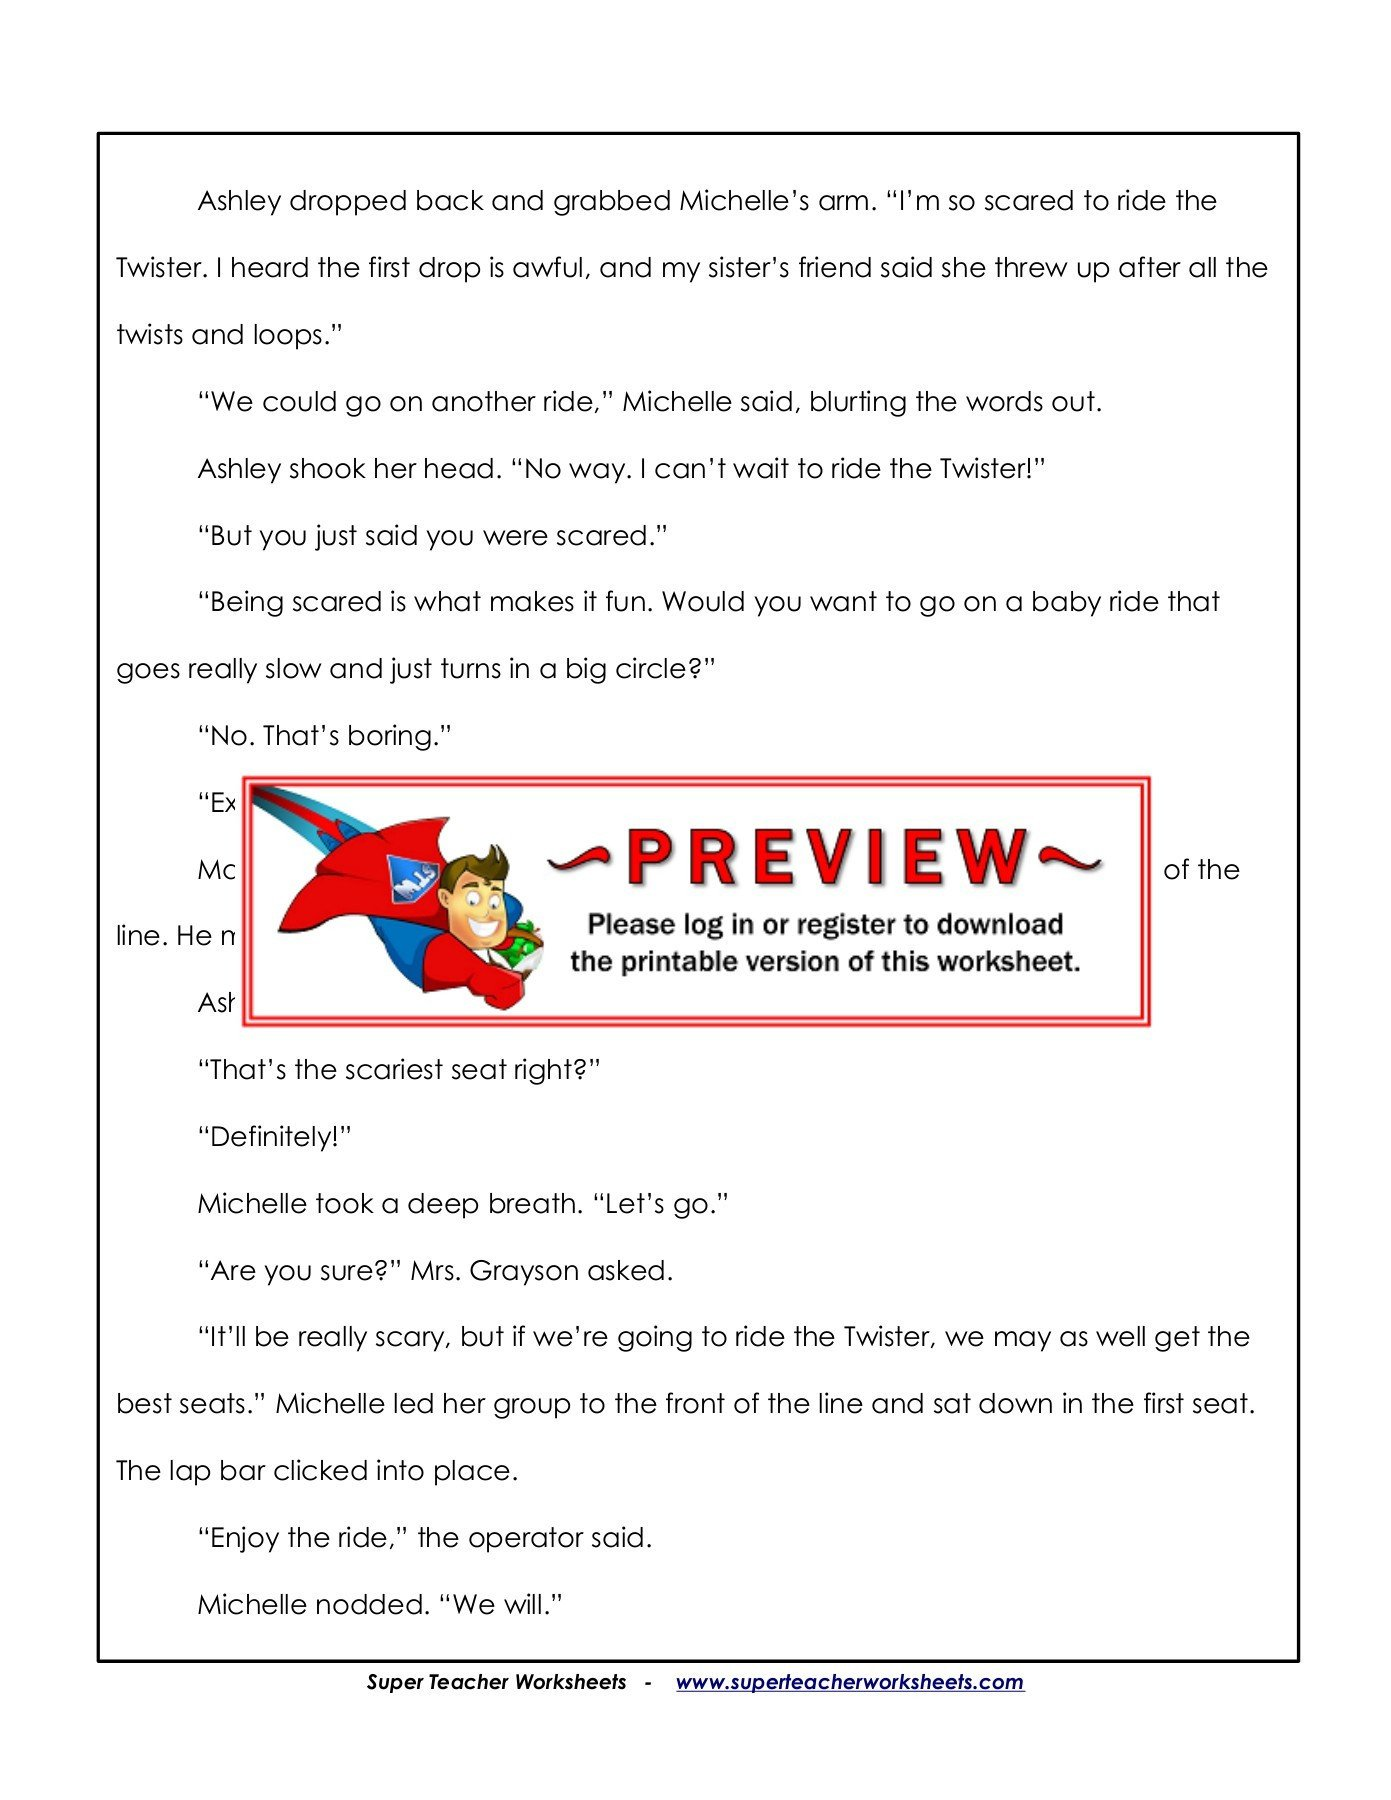 Super Teacher Worksheet Answers Name the Twister Super Teacher Worksheets